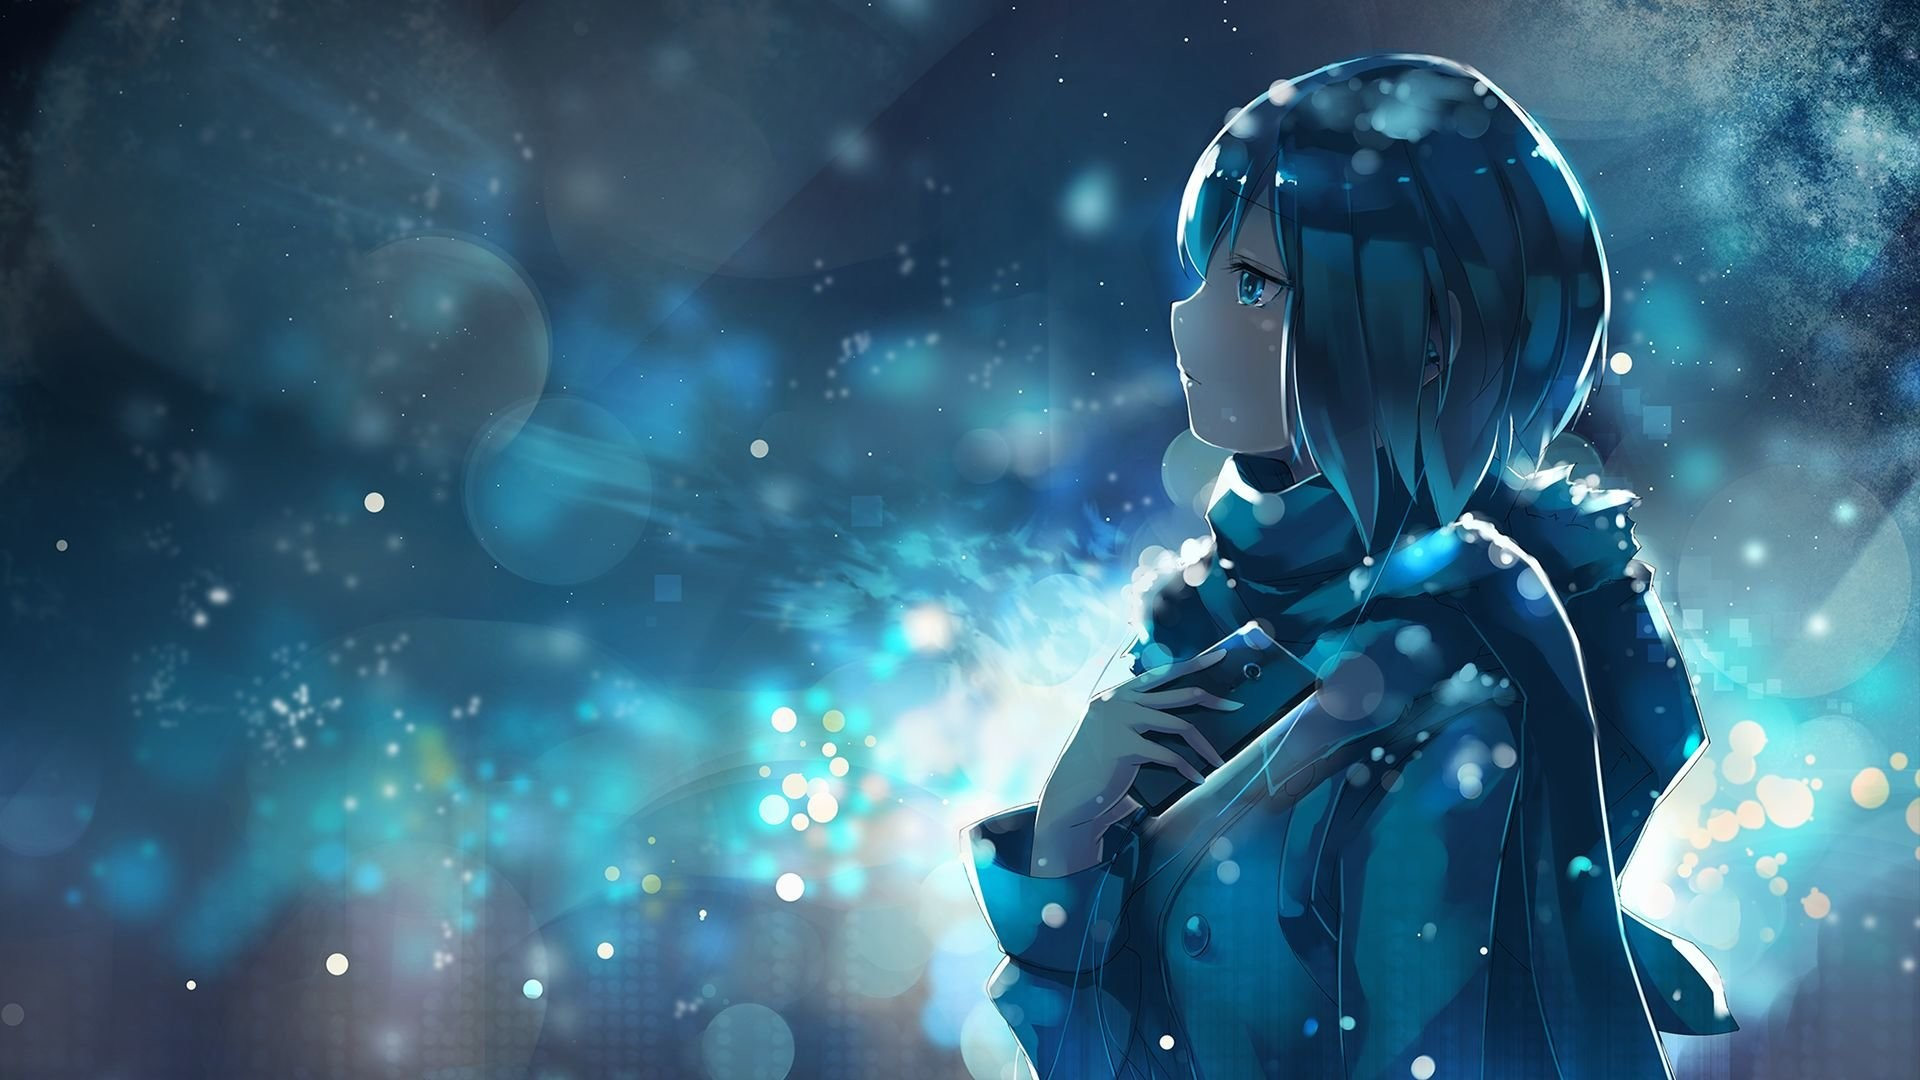 1920x1080 ... Beautiful Anime Full HD Wallpaper, Picture, Image -  ...